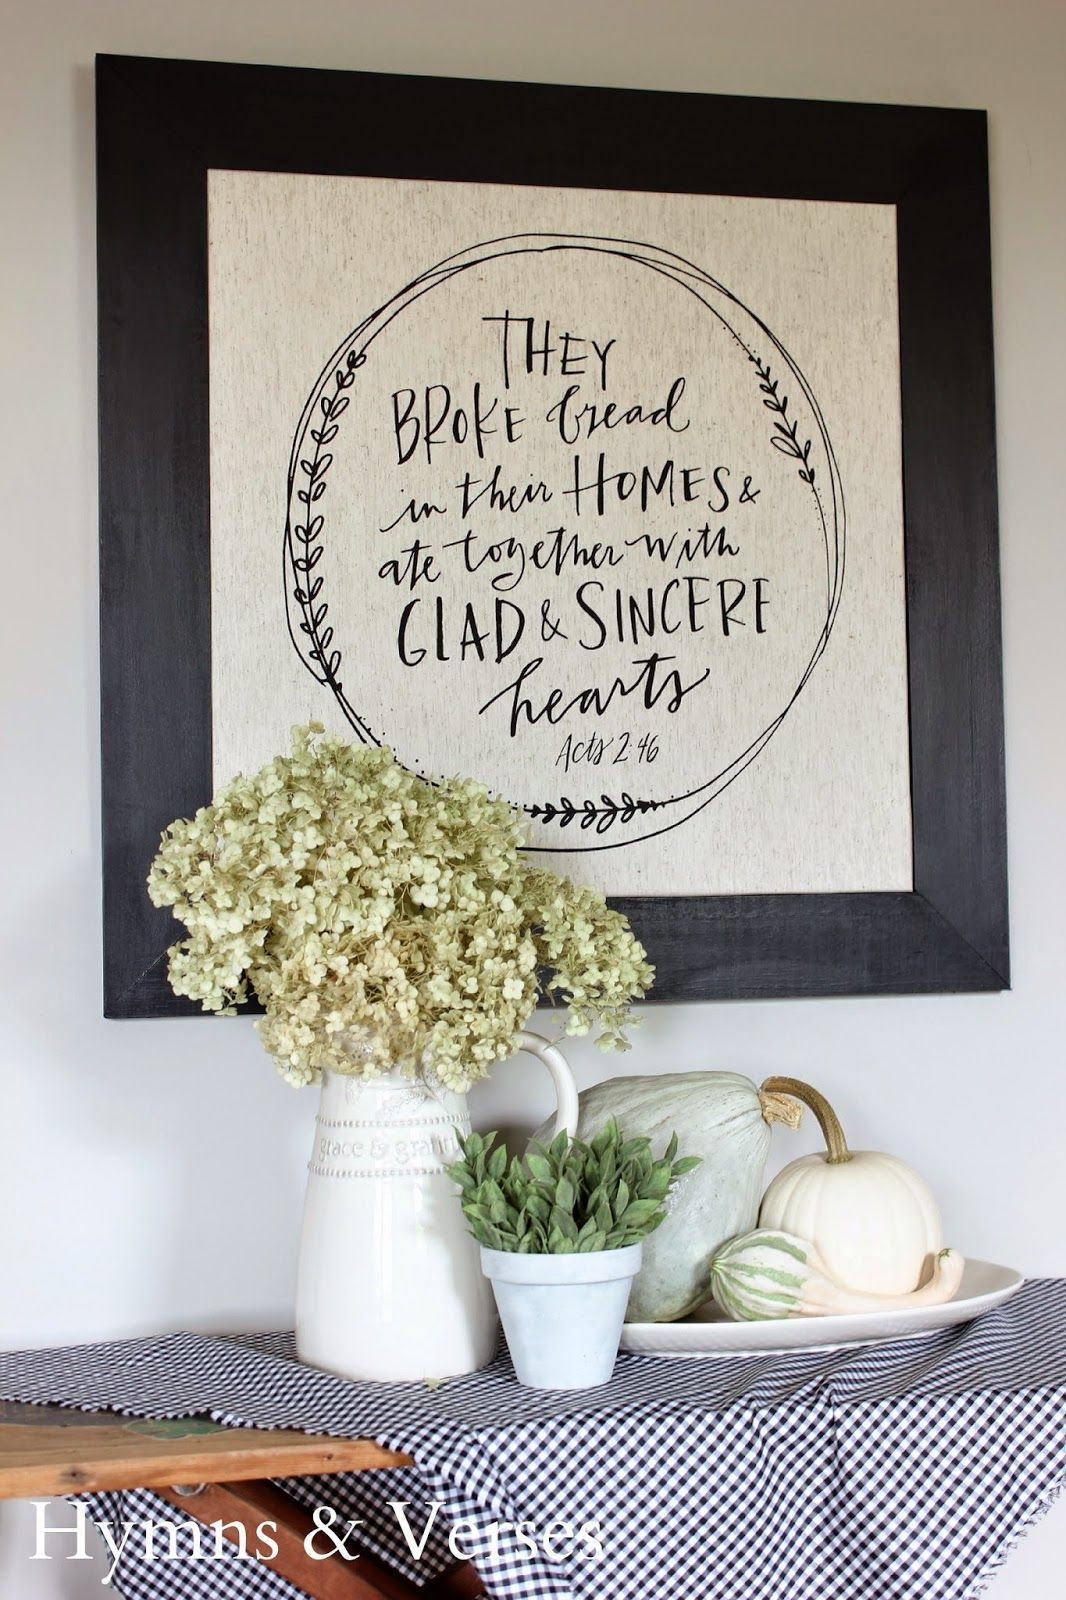 Like This Verse For The Dining Room Acts Framed Tea Towel Grace Gratitude Pitcher And Platter